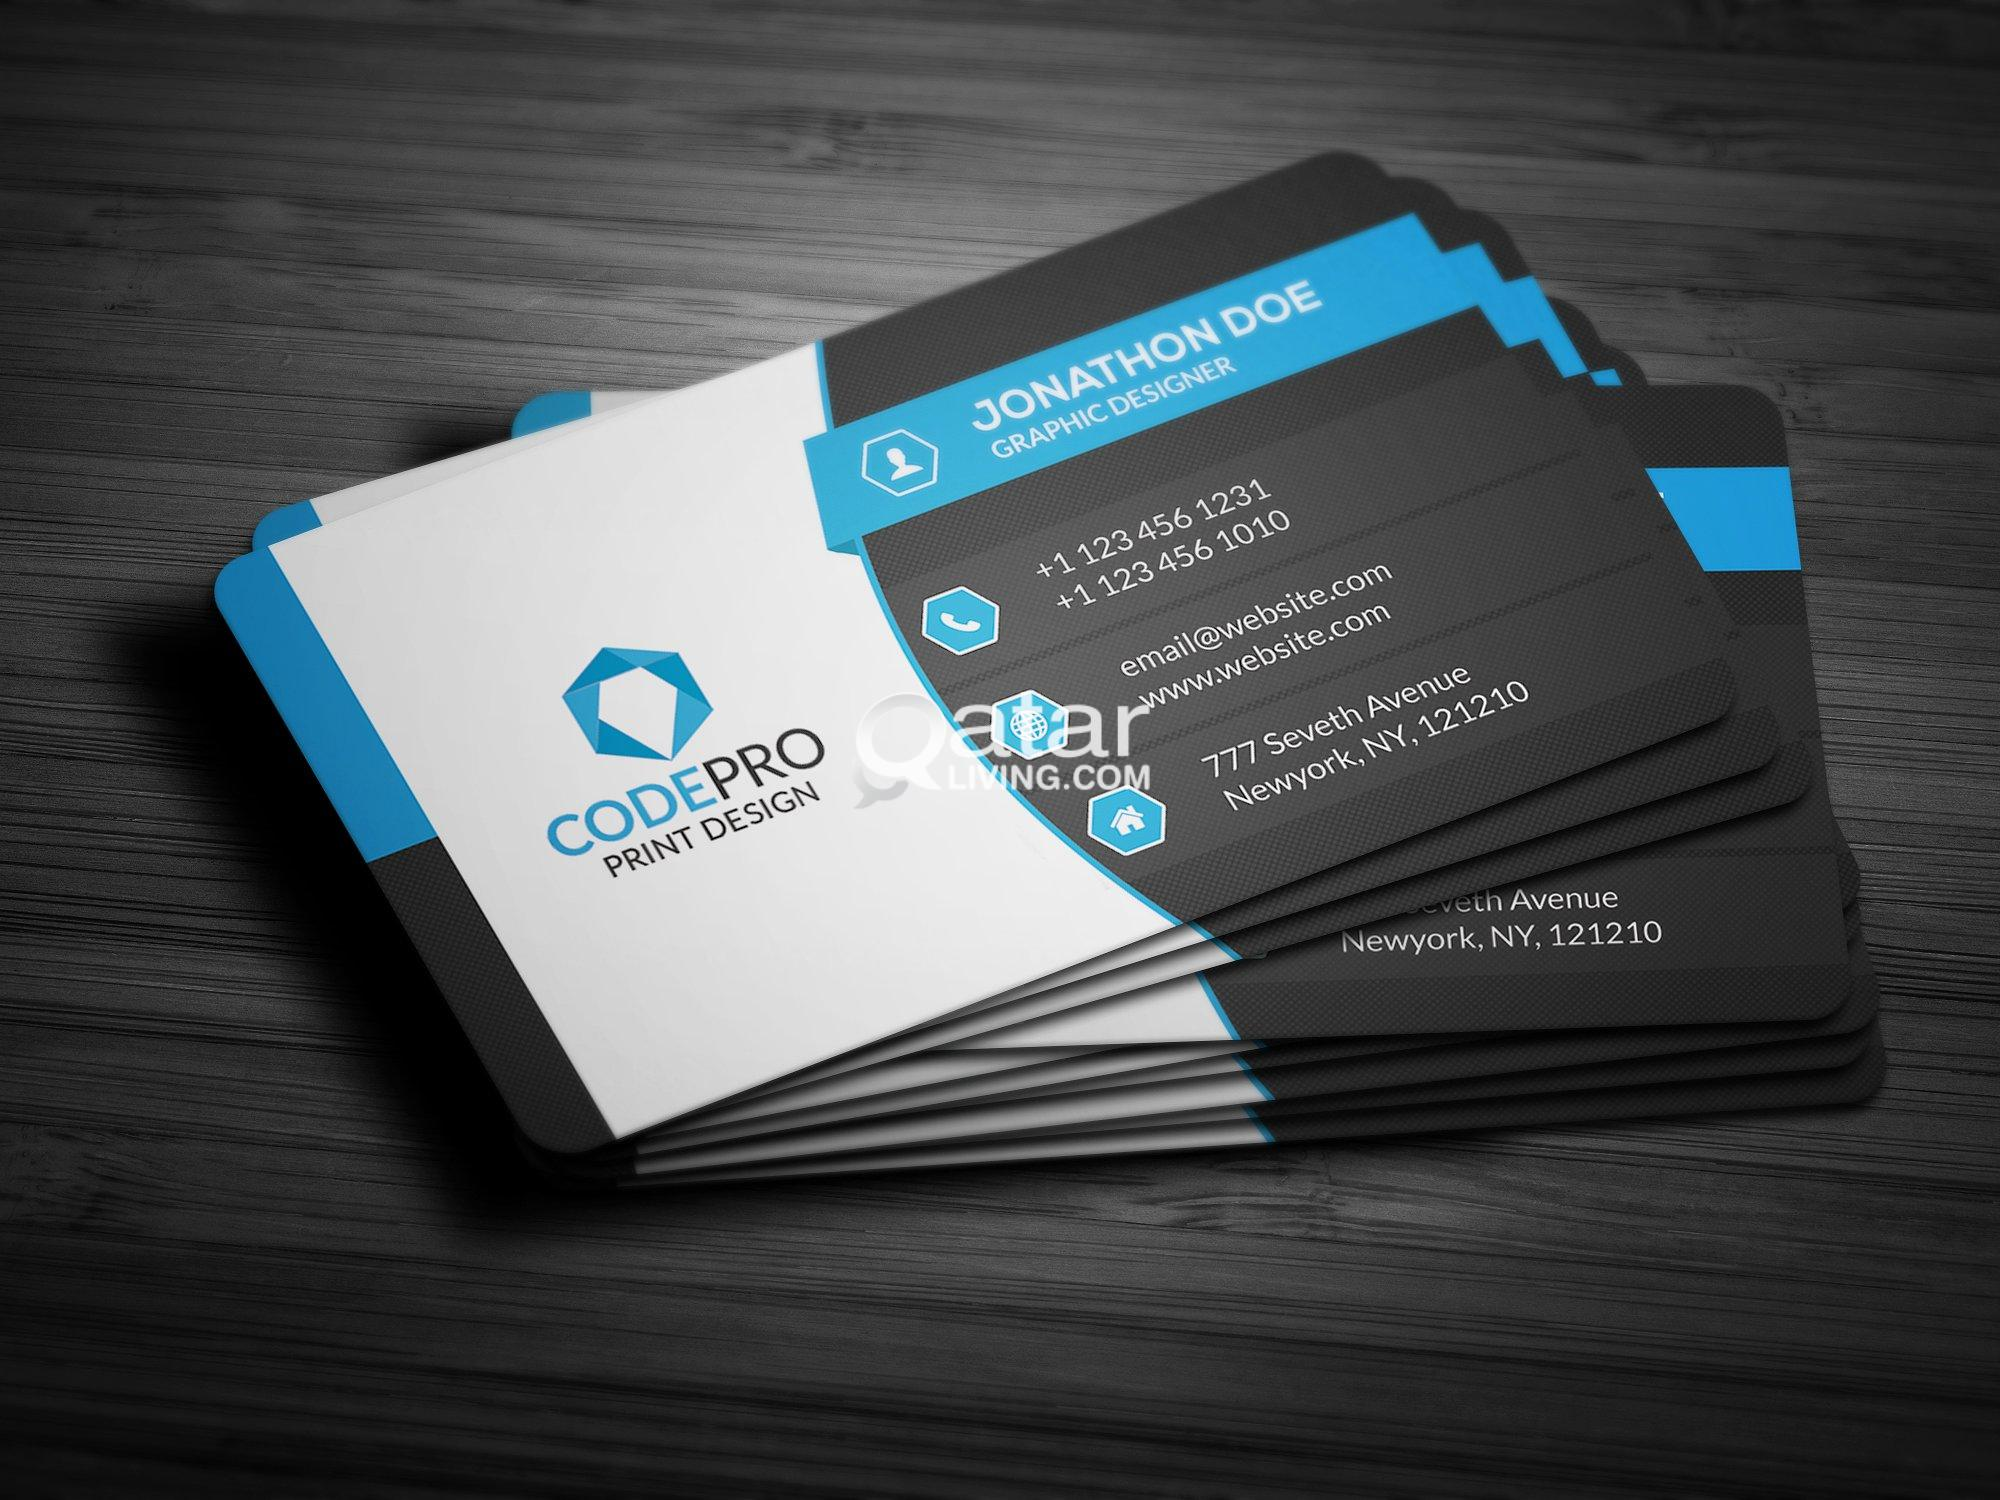 Freelance logo designerbrochurebusiness carddesigns for New business cards